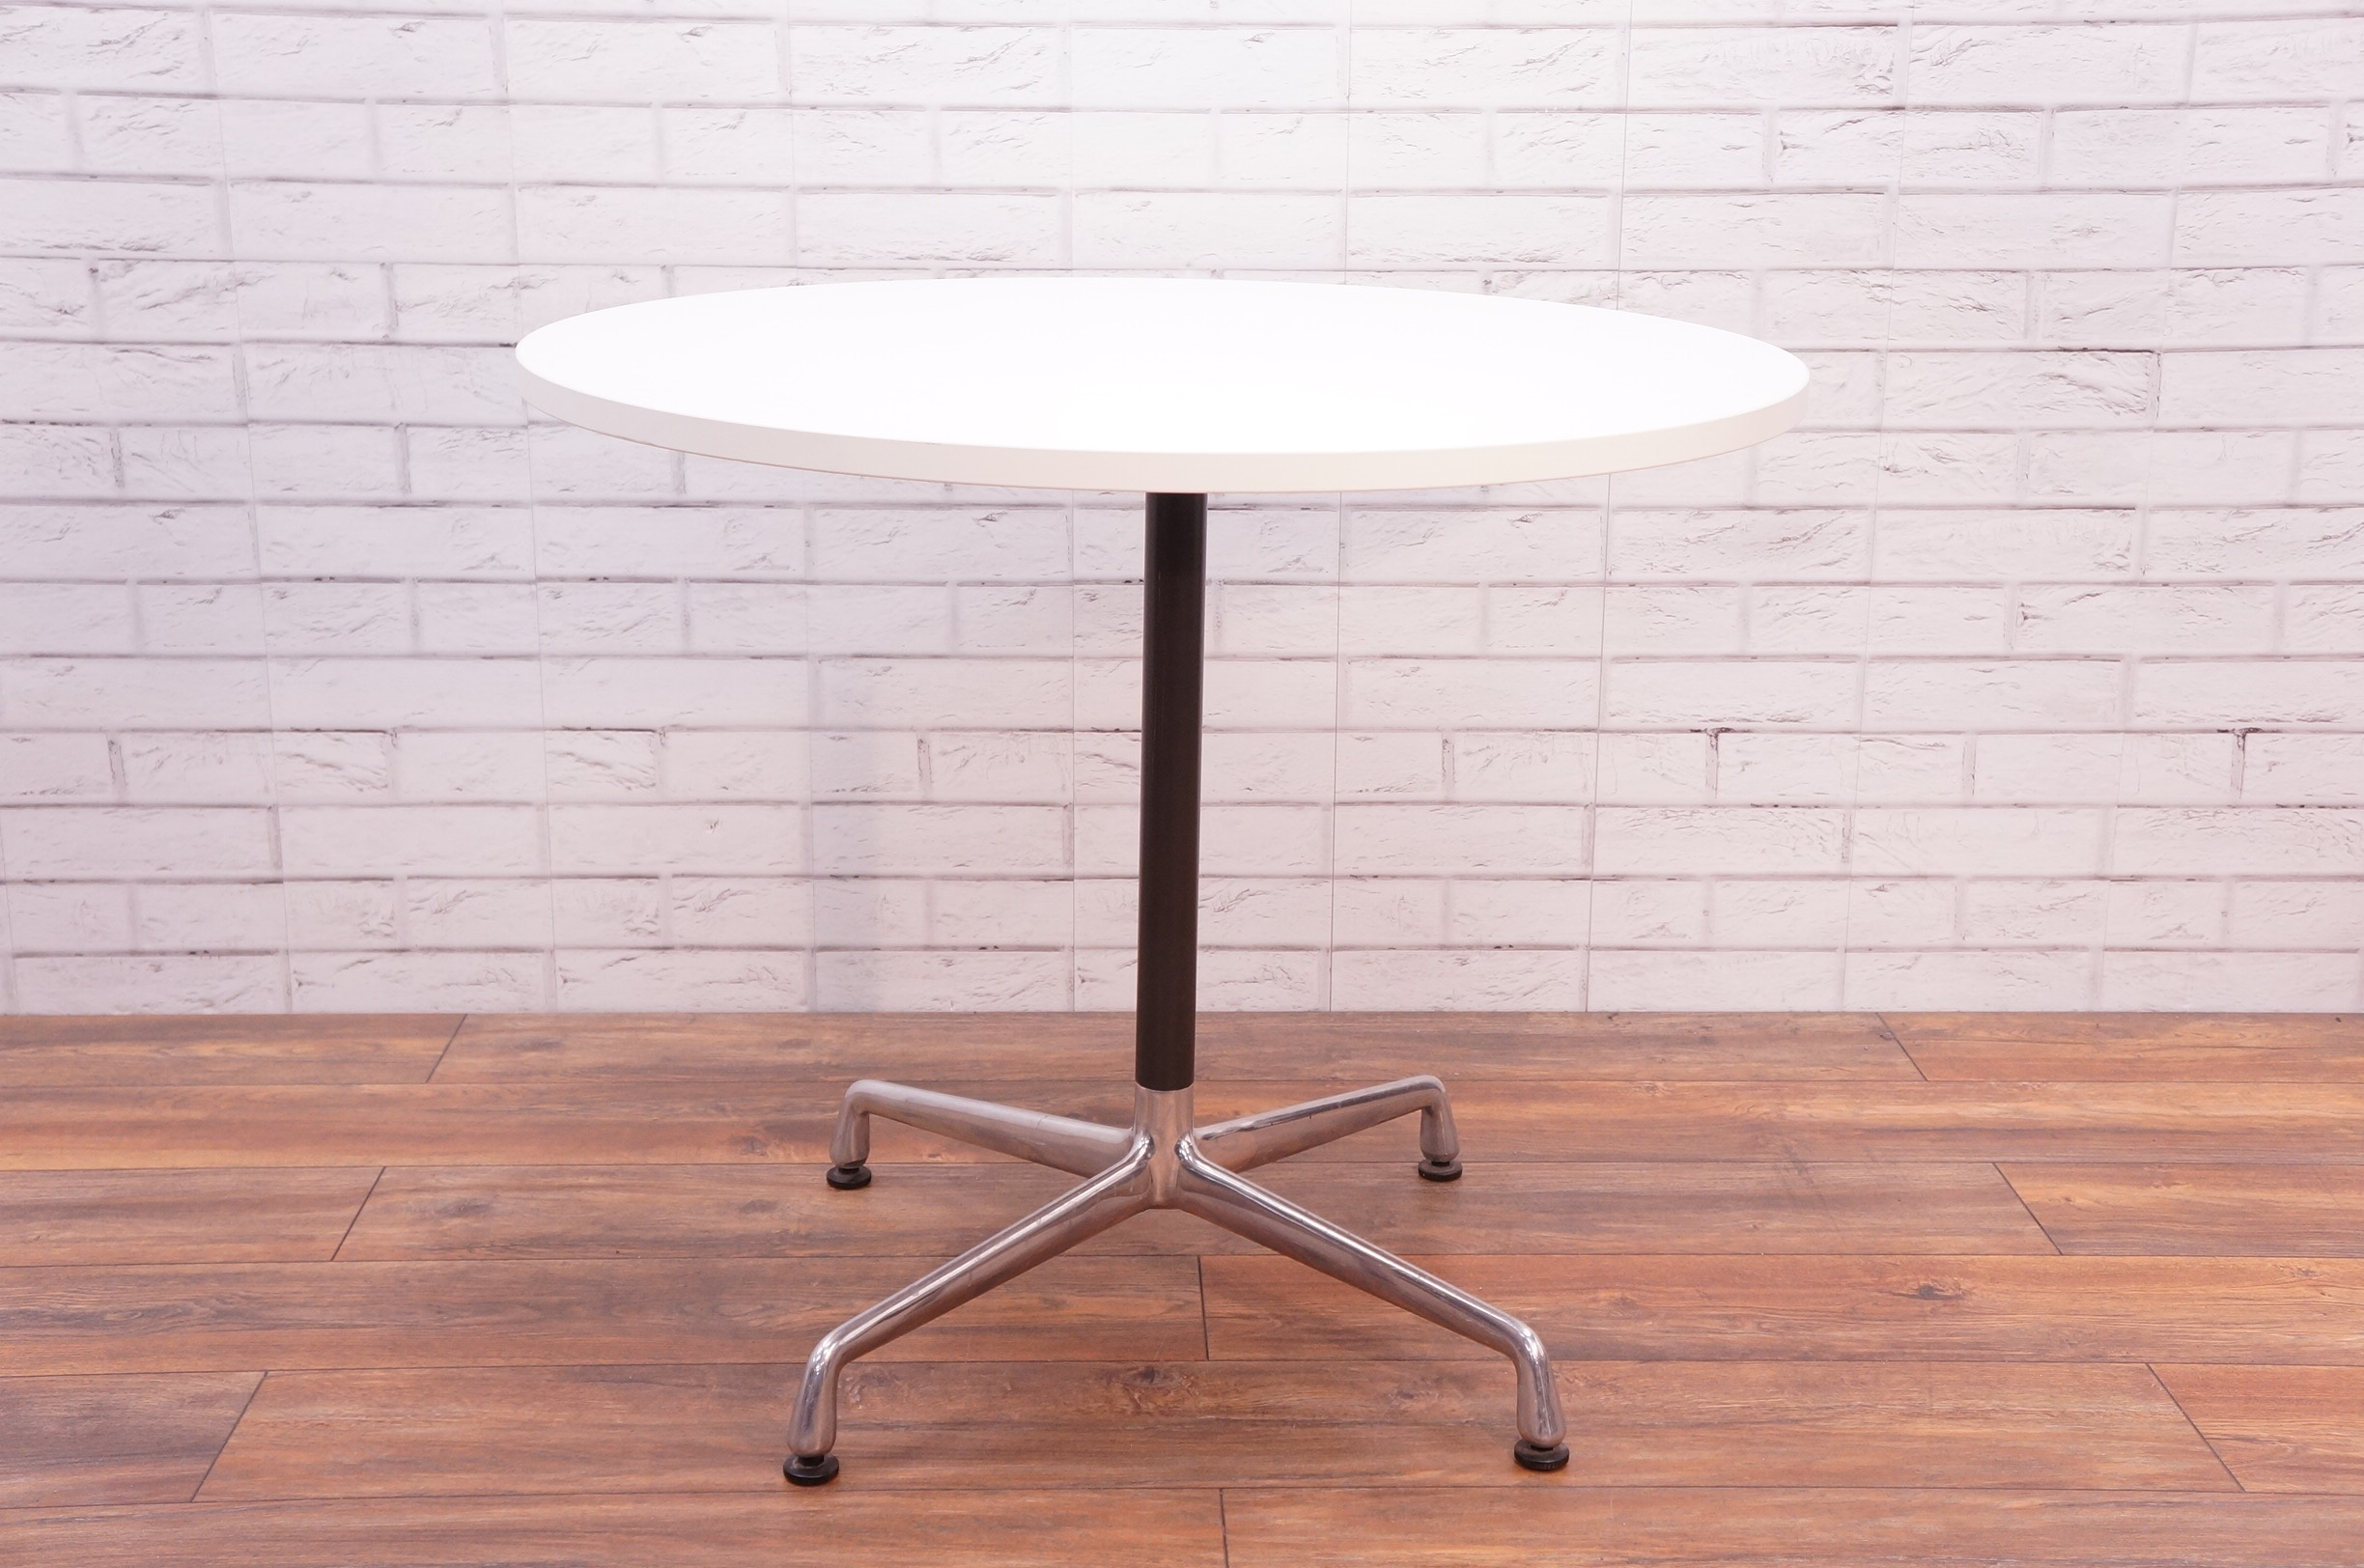 Vitra Eames Contract Table Office Resale - Vitra Click Table